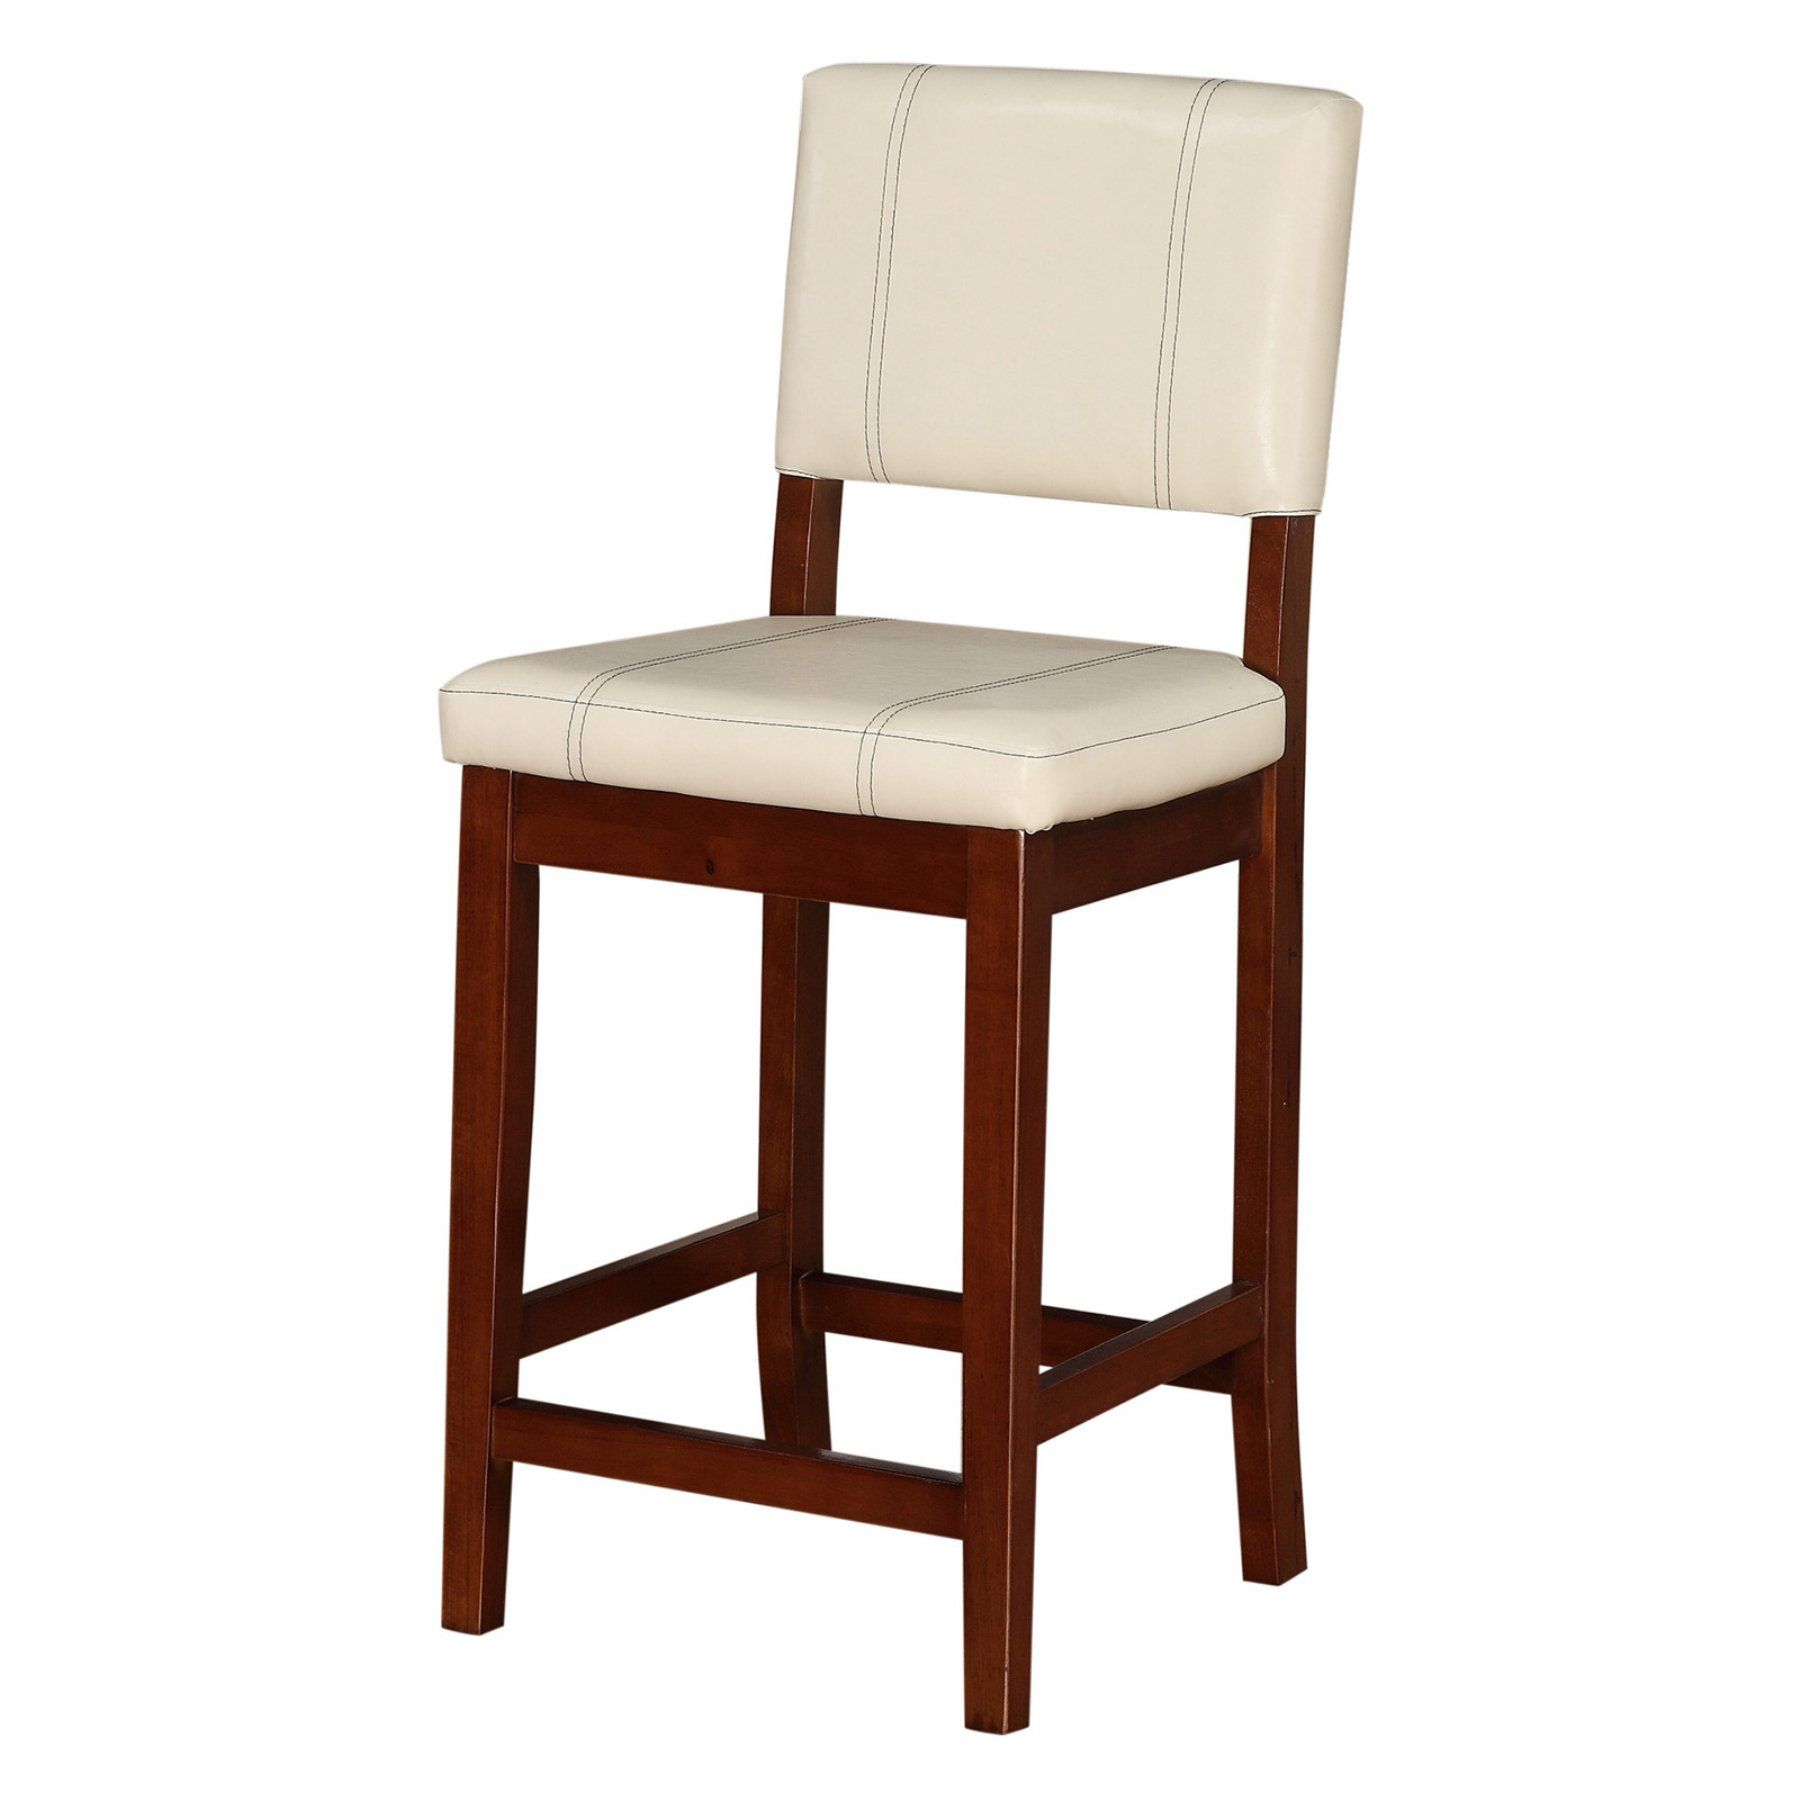 Magnificent Linon Milano 24 In Counter Stool Walnut 0210Crm01U Unemploymentrelief Wooden Chair Designs For Living Room Unemploymentrelieforg